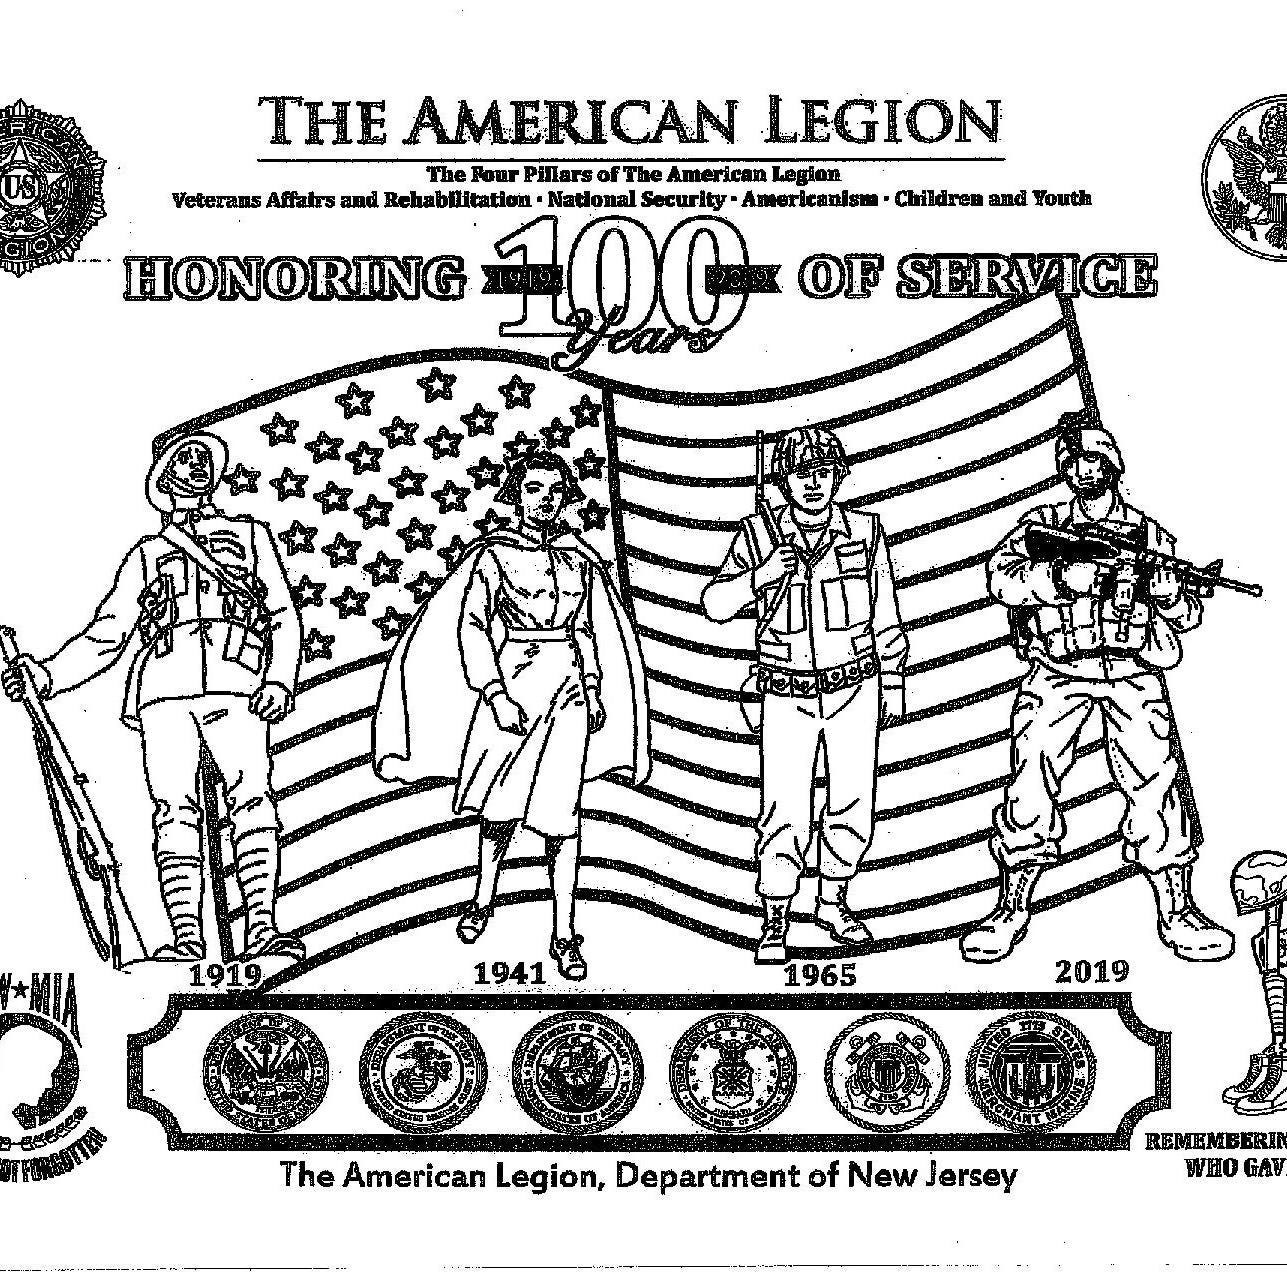 Glen Rock schools bow out of American Legion coloring contest over 'inappropriate' image